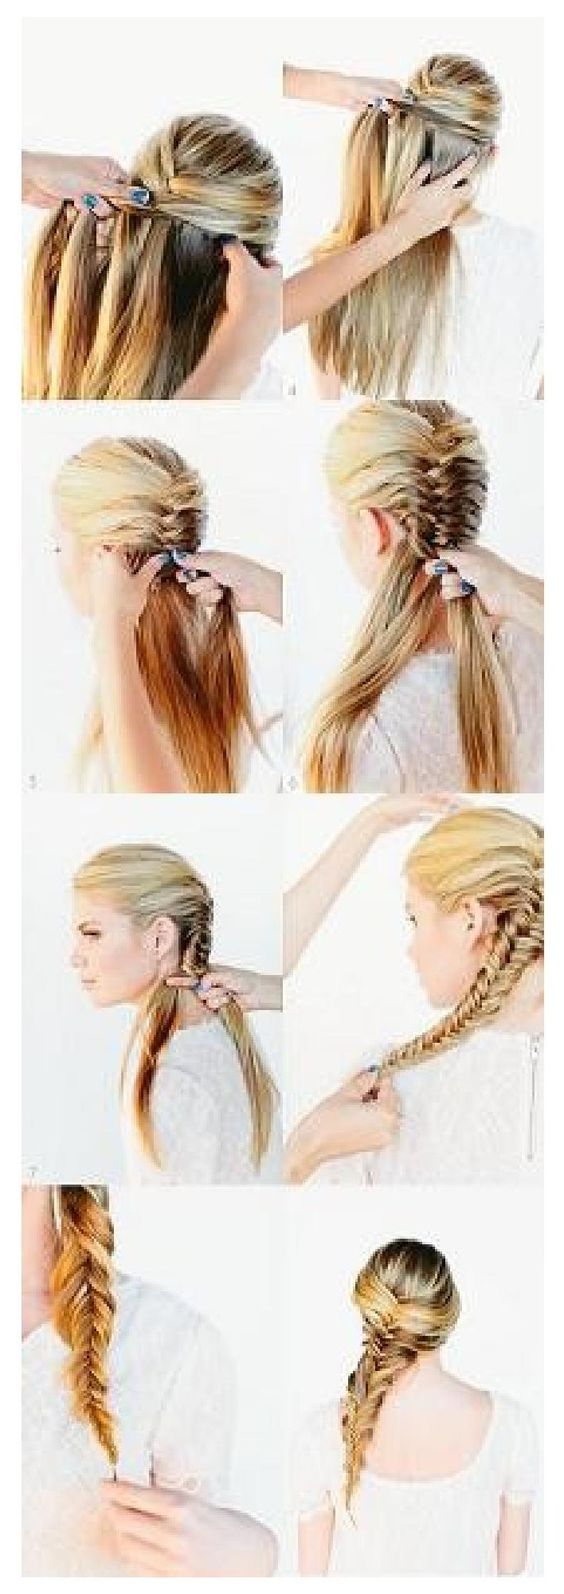 best coiffures images on pinterest cute hairstyles hairstyle